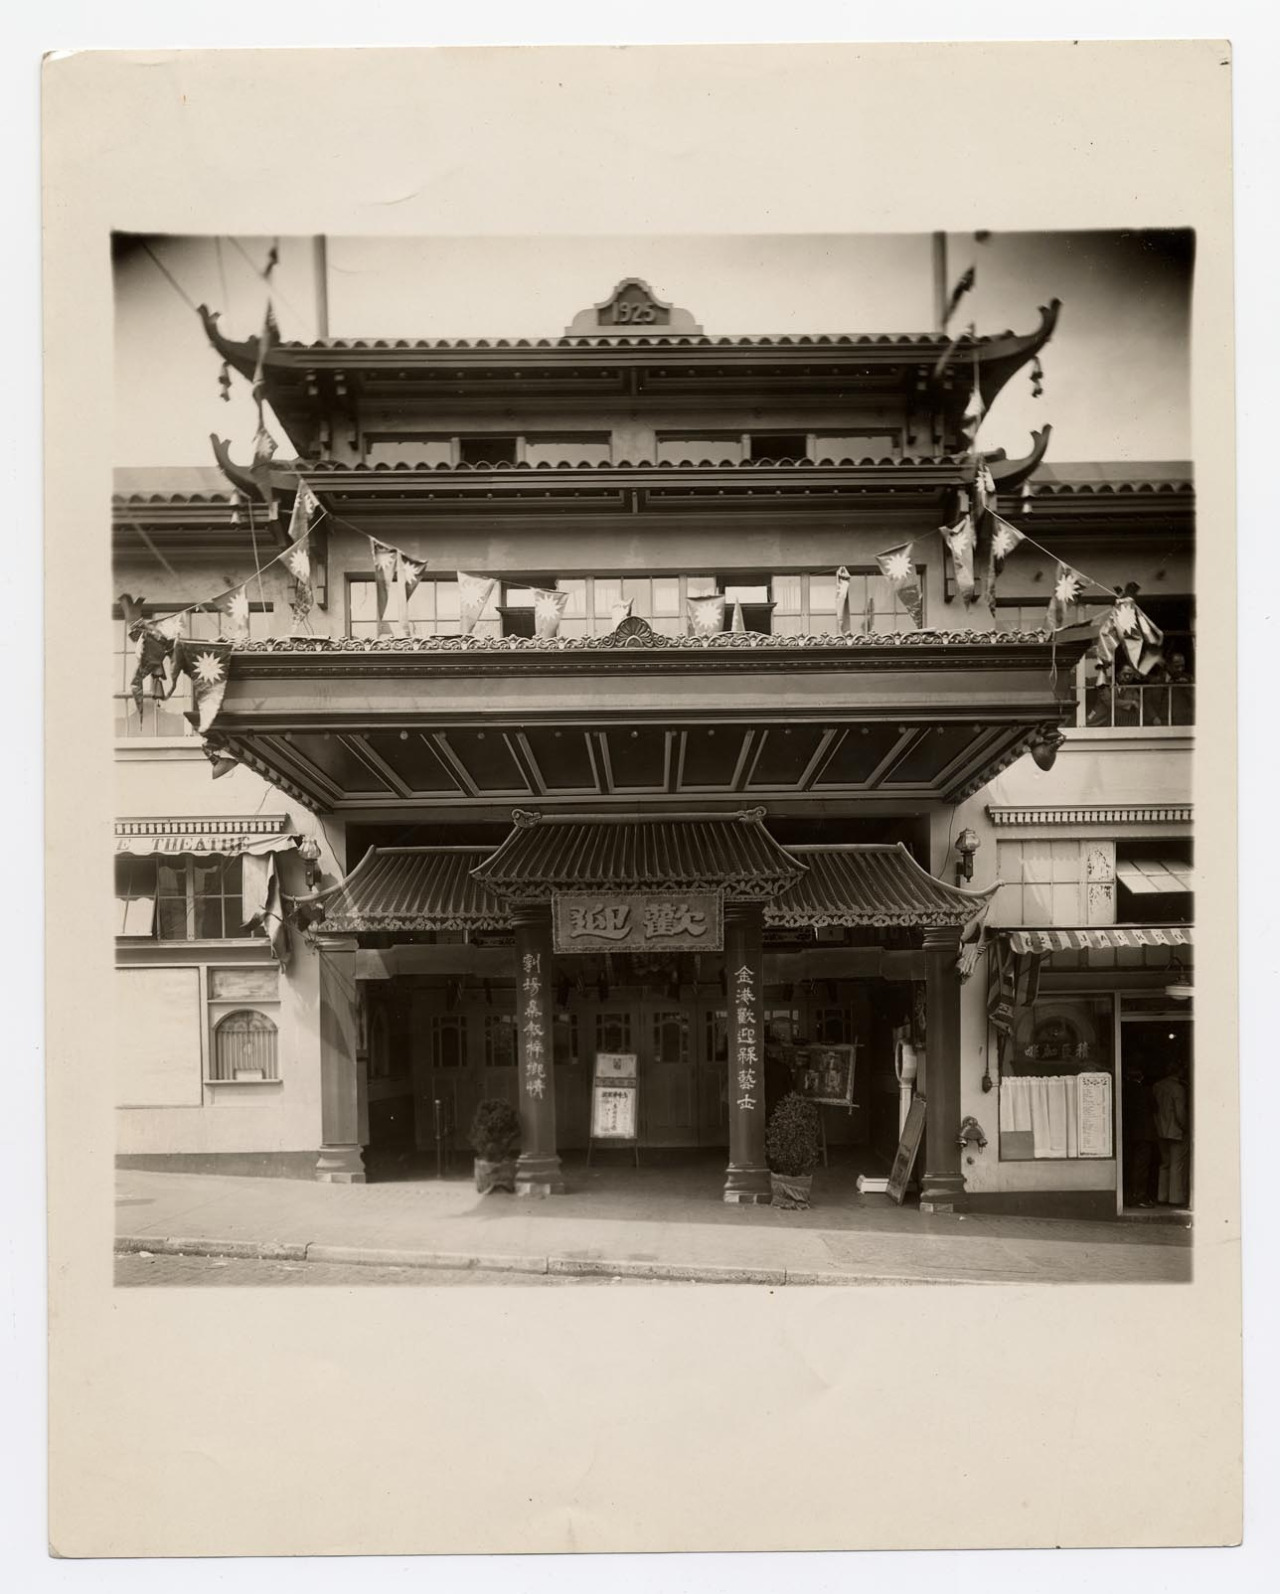 Inaugural picture of the Great China Theatre on Jackson Street in San Francisco's Chinatown, 1925  (Digital Archive of Chinese Theater in California via University of California)